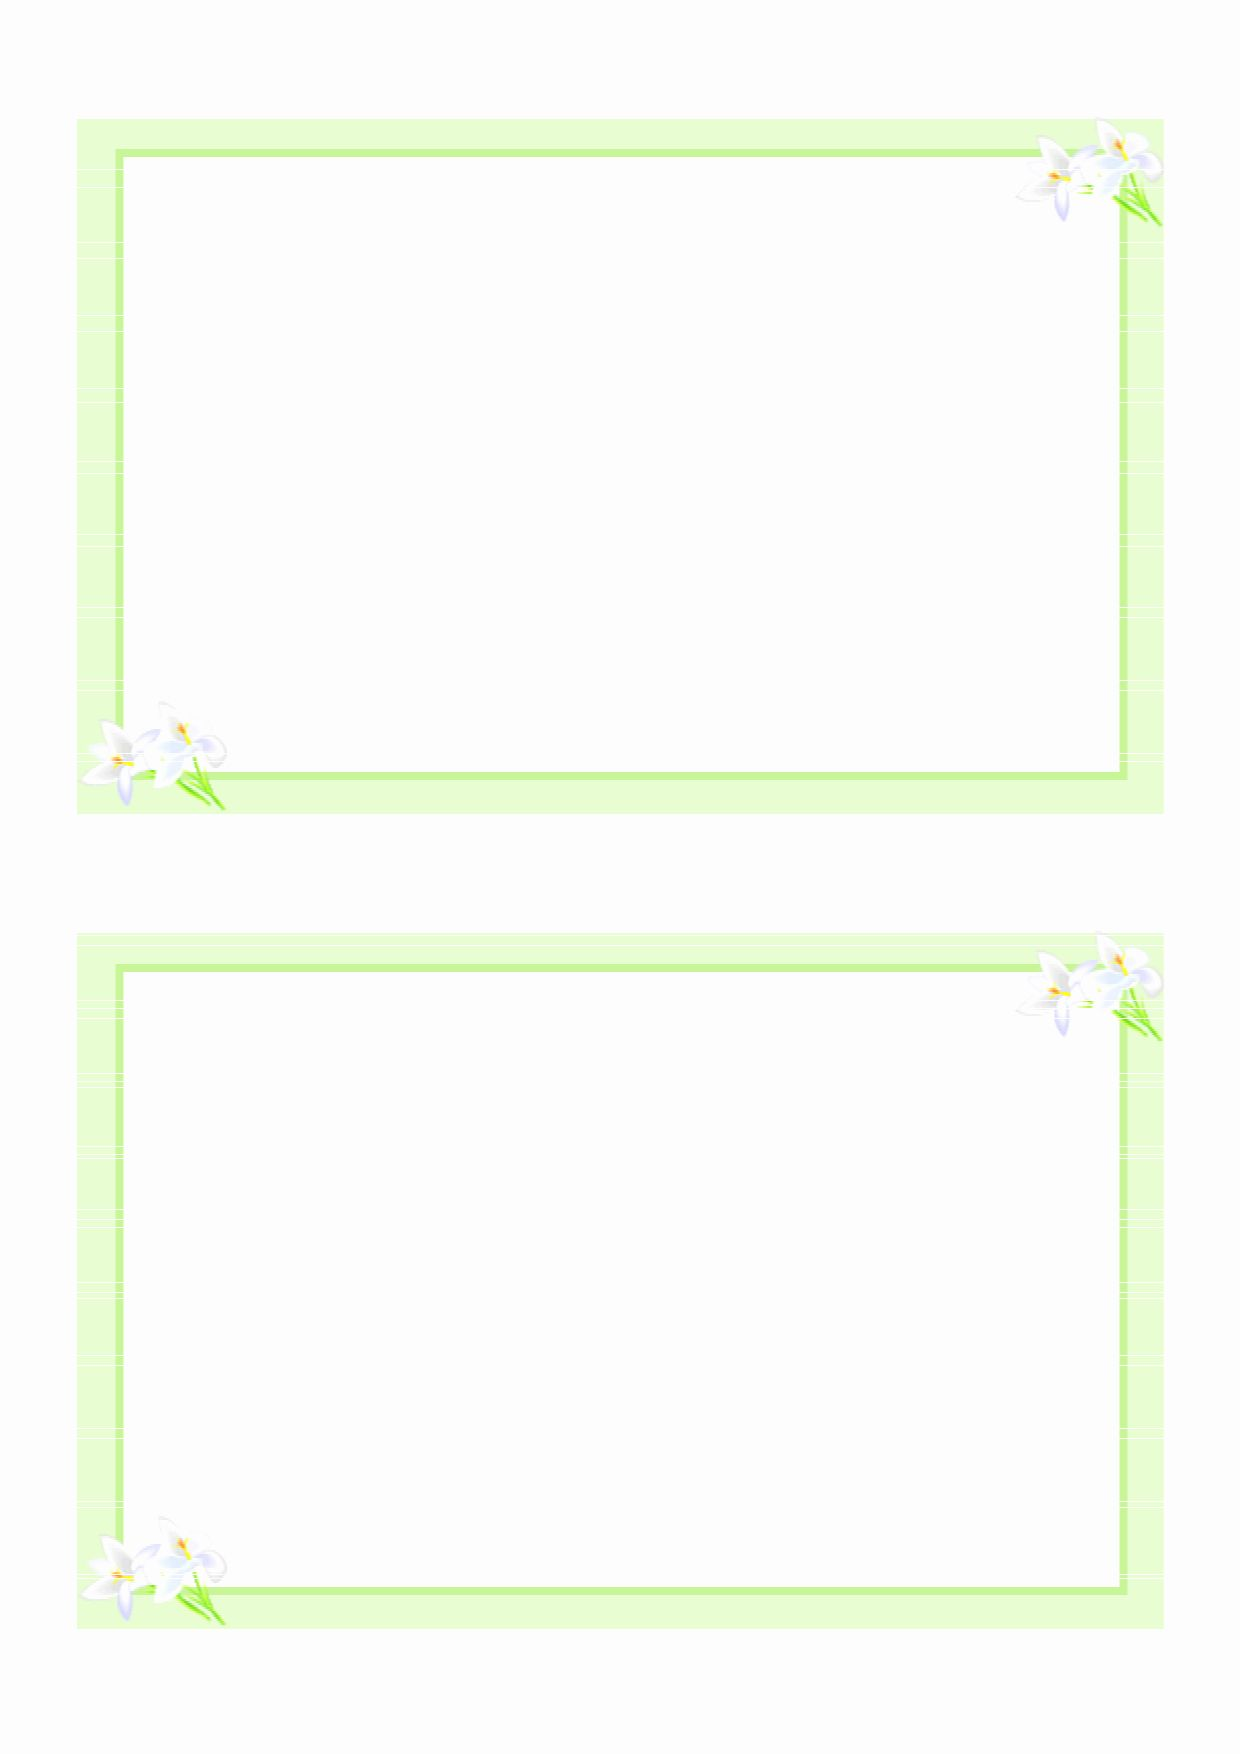 Blank Postcard Template Free Lovely Card Printable Gallery Category Page 39 Postcard Template Free Blank Card Template Free Printable Card Templates